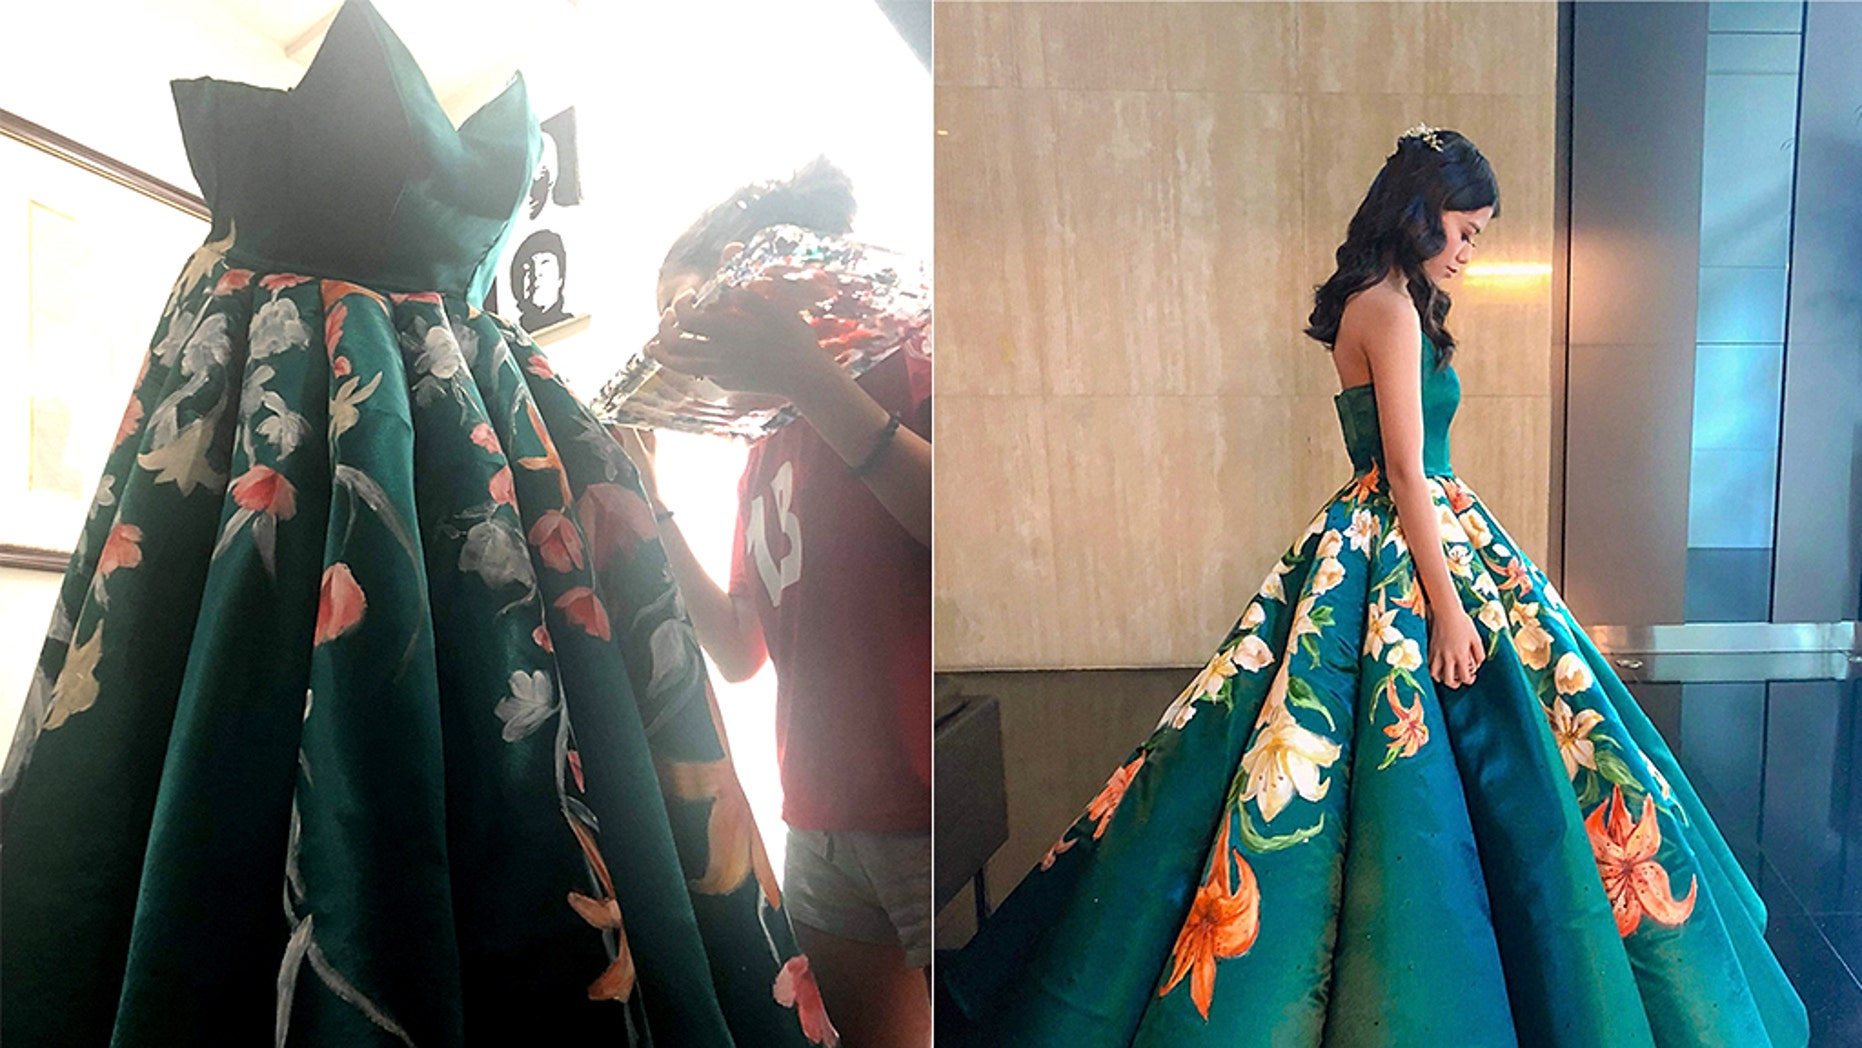 fe62b473bcf One creative teenager in the Philippines has gone viral for making a dress  fit for a